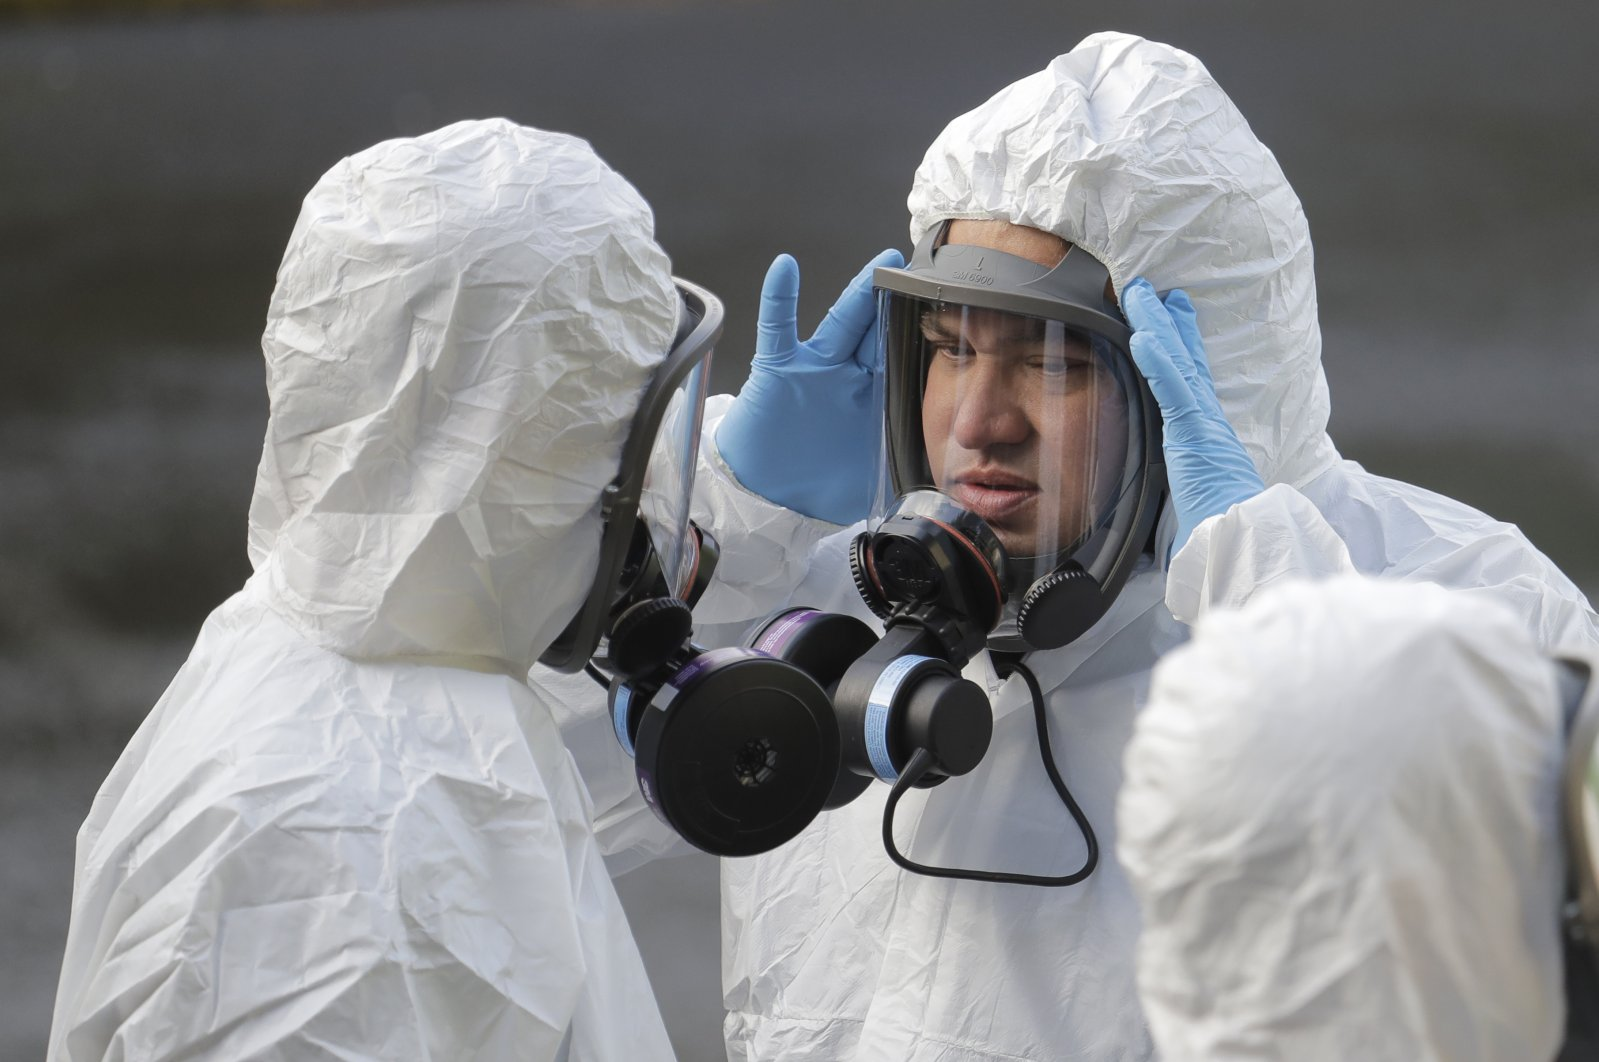 A worker from a Servpro disaster recovery team wearing a protective suit and respirator adjusts his mask before entering the Life Care Center in Kirkland, Wash. to begin cleaning and disinfecting the facility, Wednesday, March 11, 2020, near Seattle. The nursing home is at the center of the outbreak of the COVID-19 coronavirus in Washington state. (AP Photo)